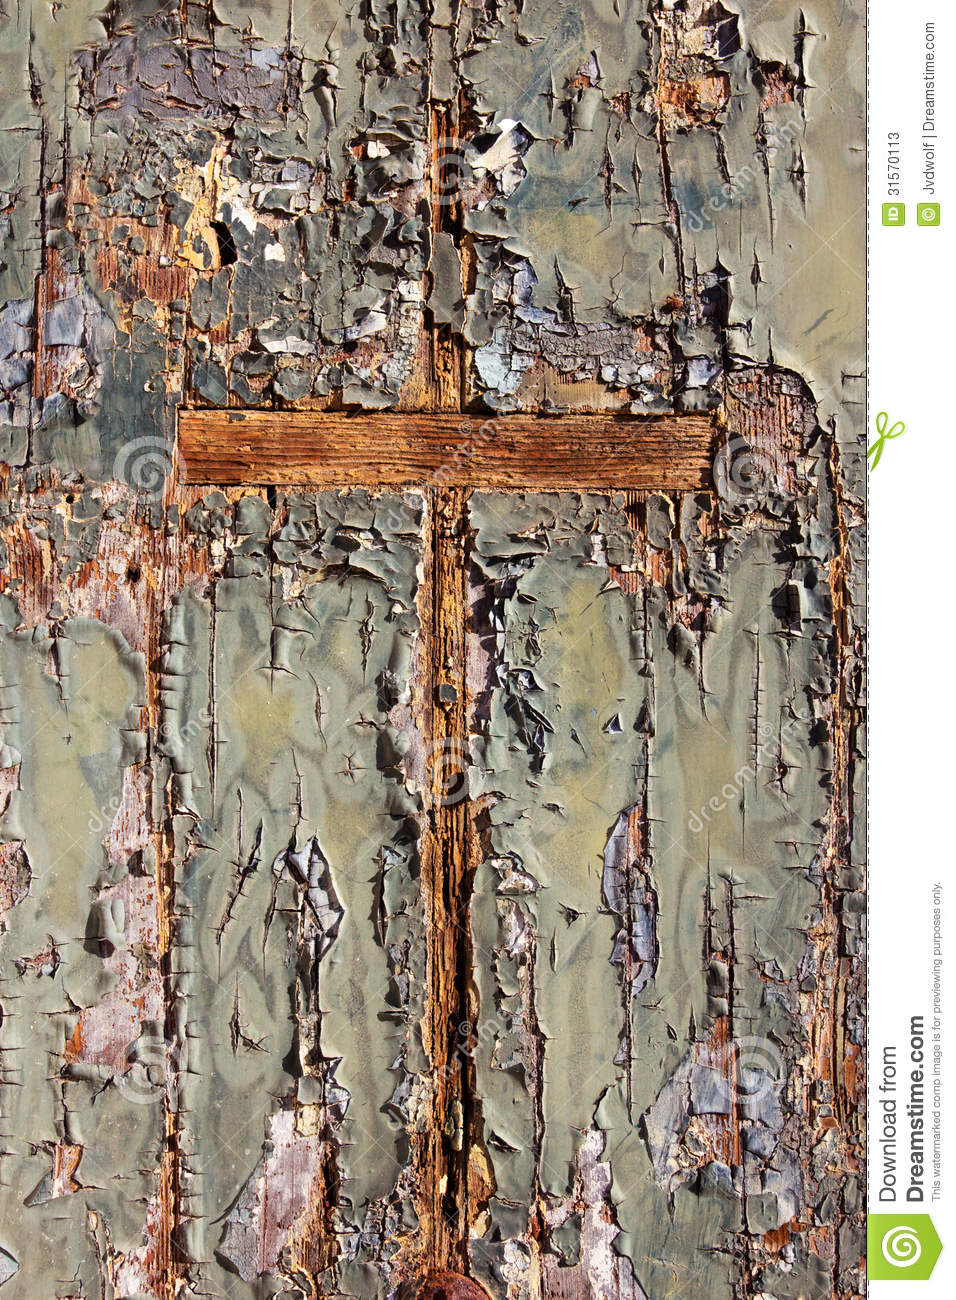 Wooden Cross Stock Image Image Of Cracked Dirty Grunge